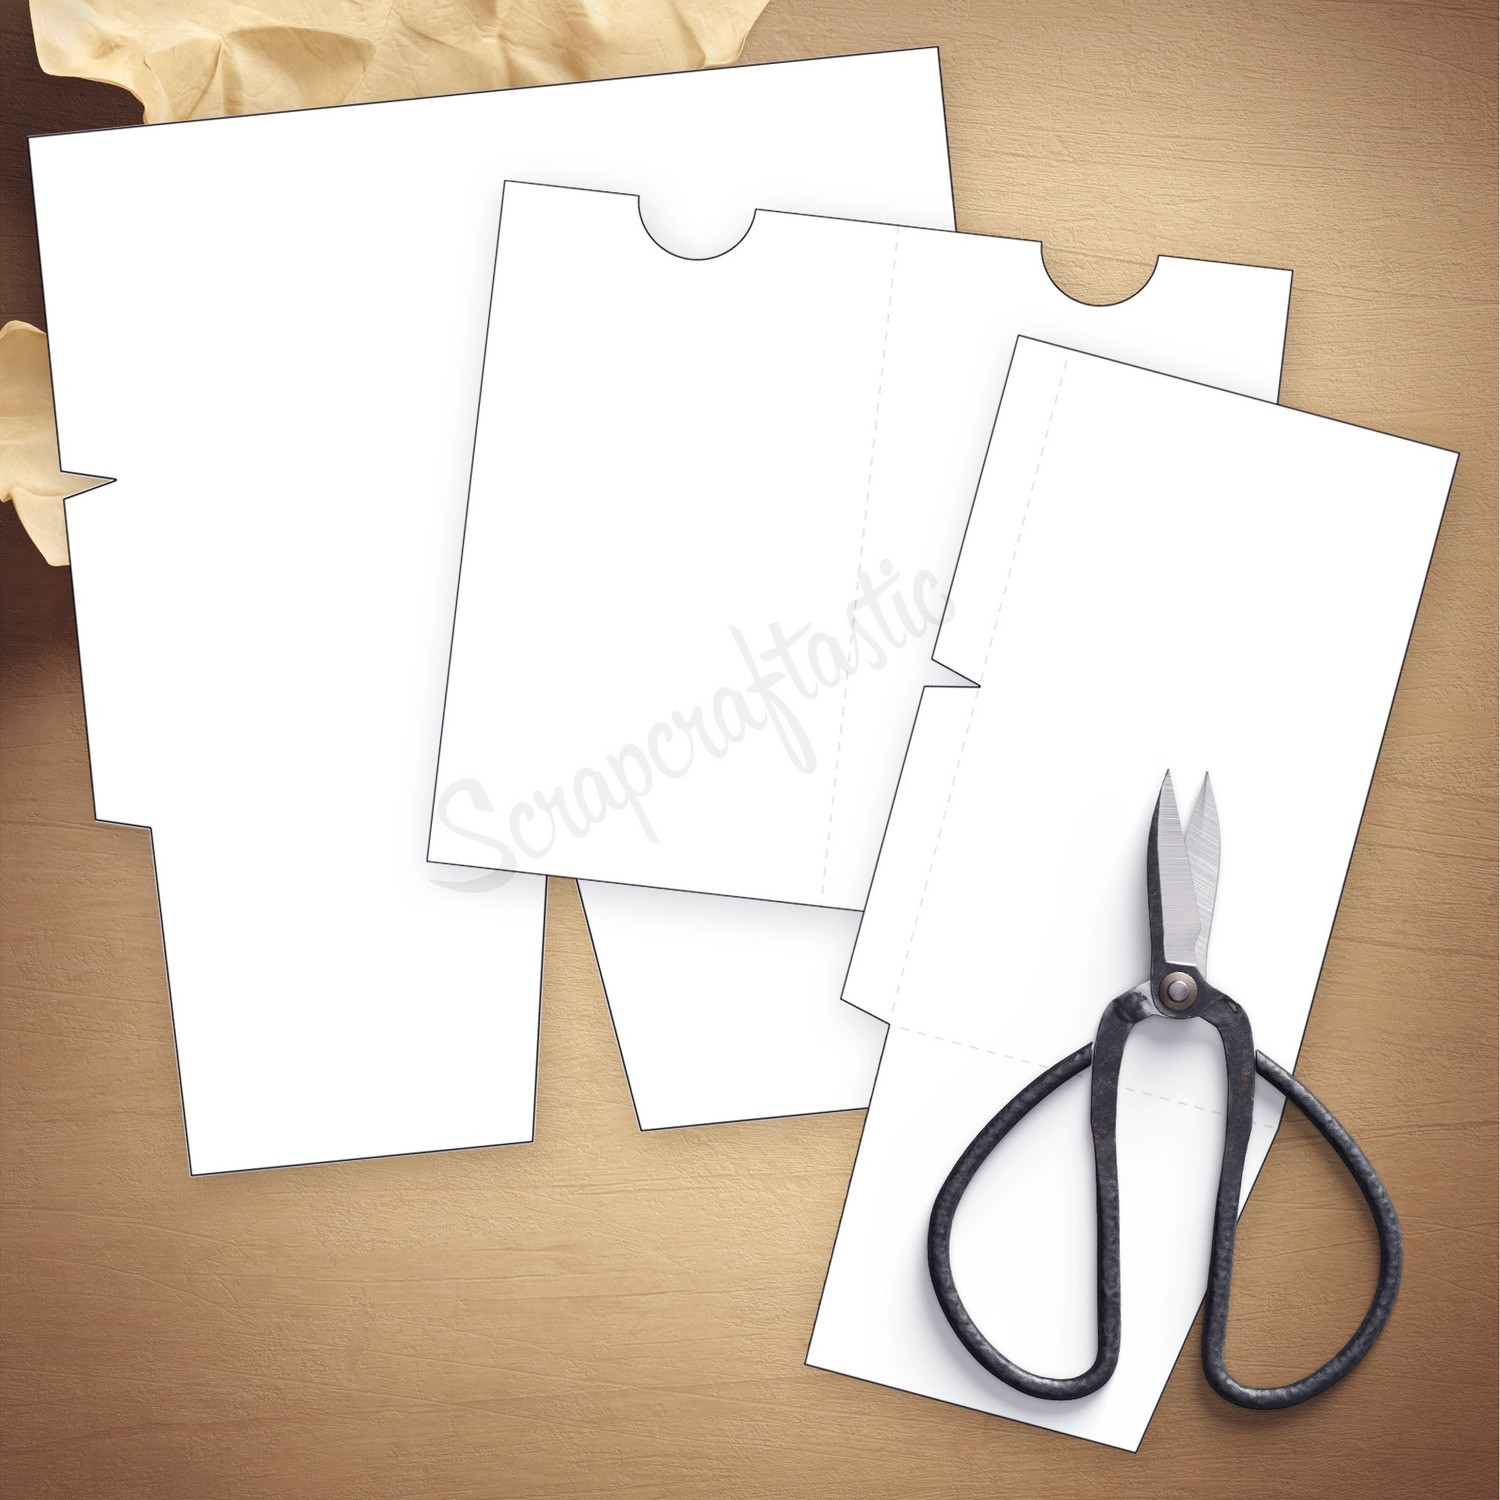 Folder Insert Template for B6 Size Traveler's Notebook